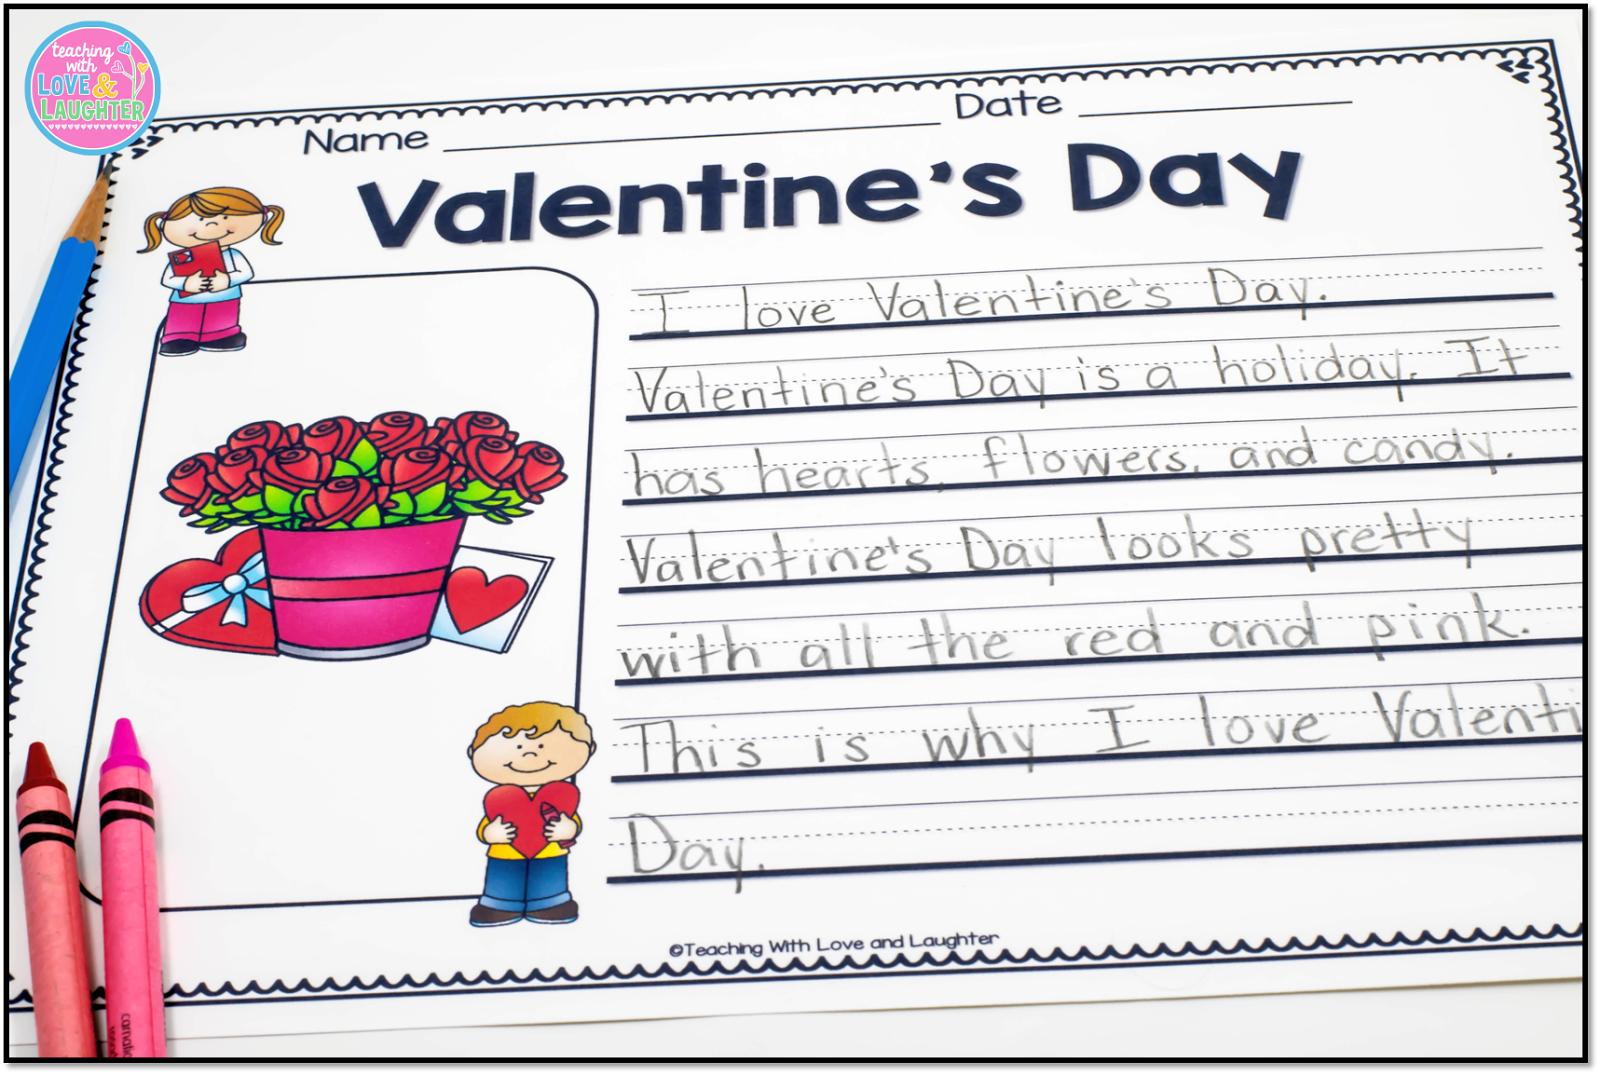 Teaching With Love And Laughter Sweet Valentine S Day Activities